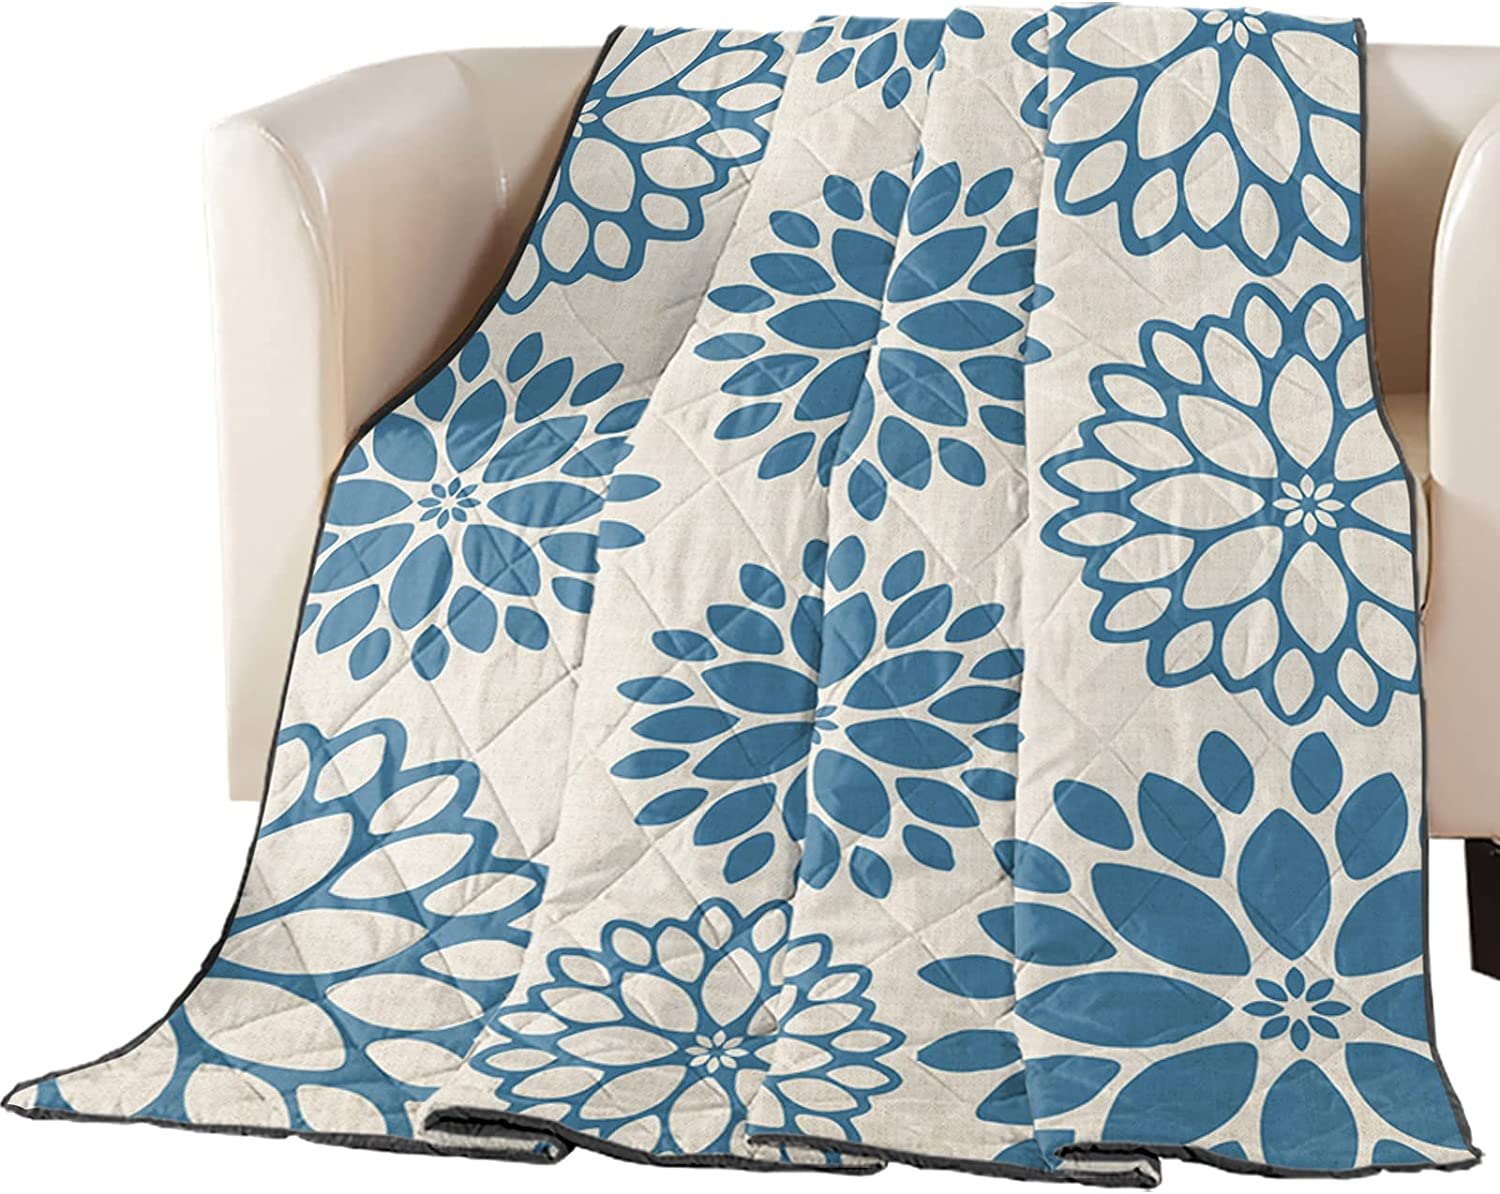 Thin Comforter Max 61% OFF Bedspread Throw Blanket Dahlia Pi Floral Abstract Max 58% OFF